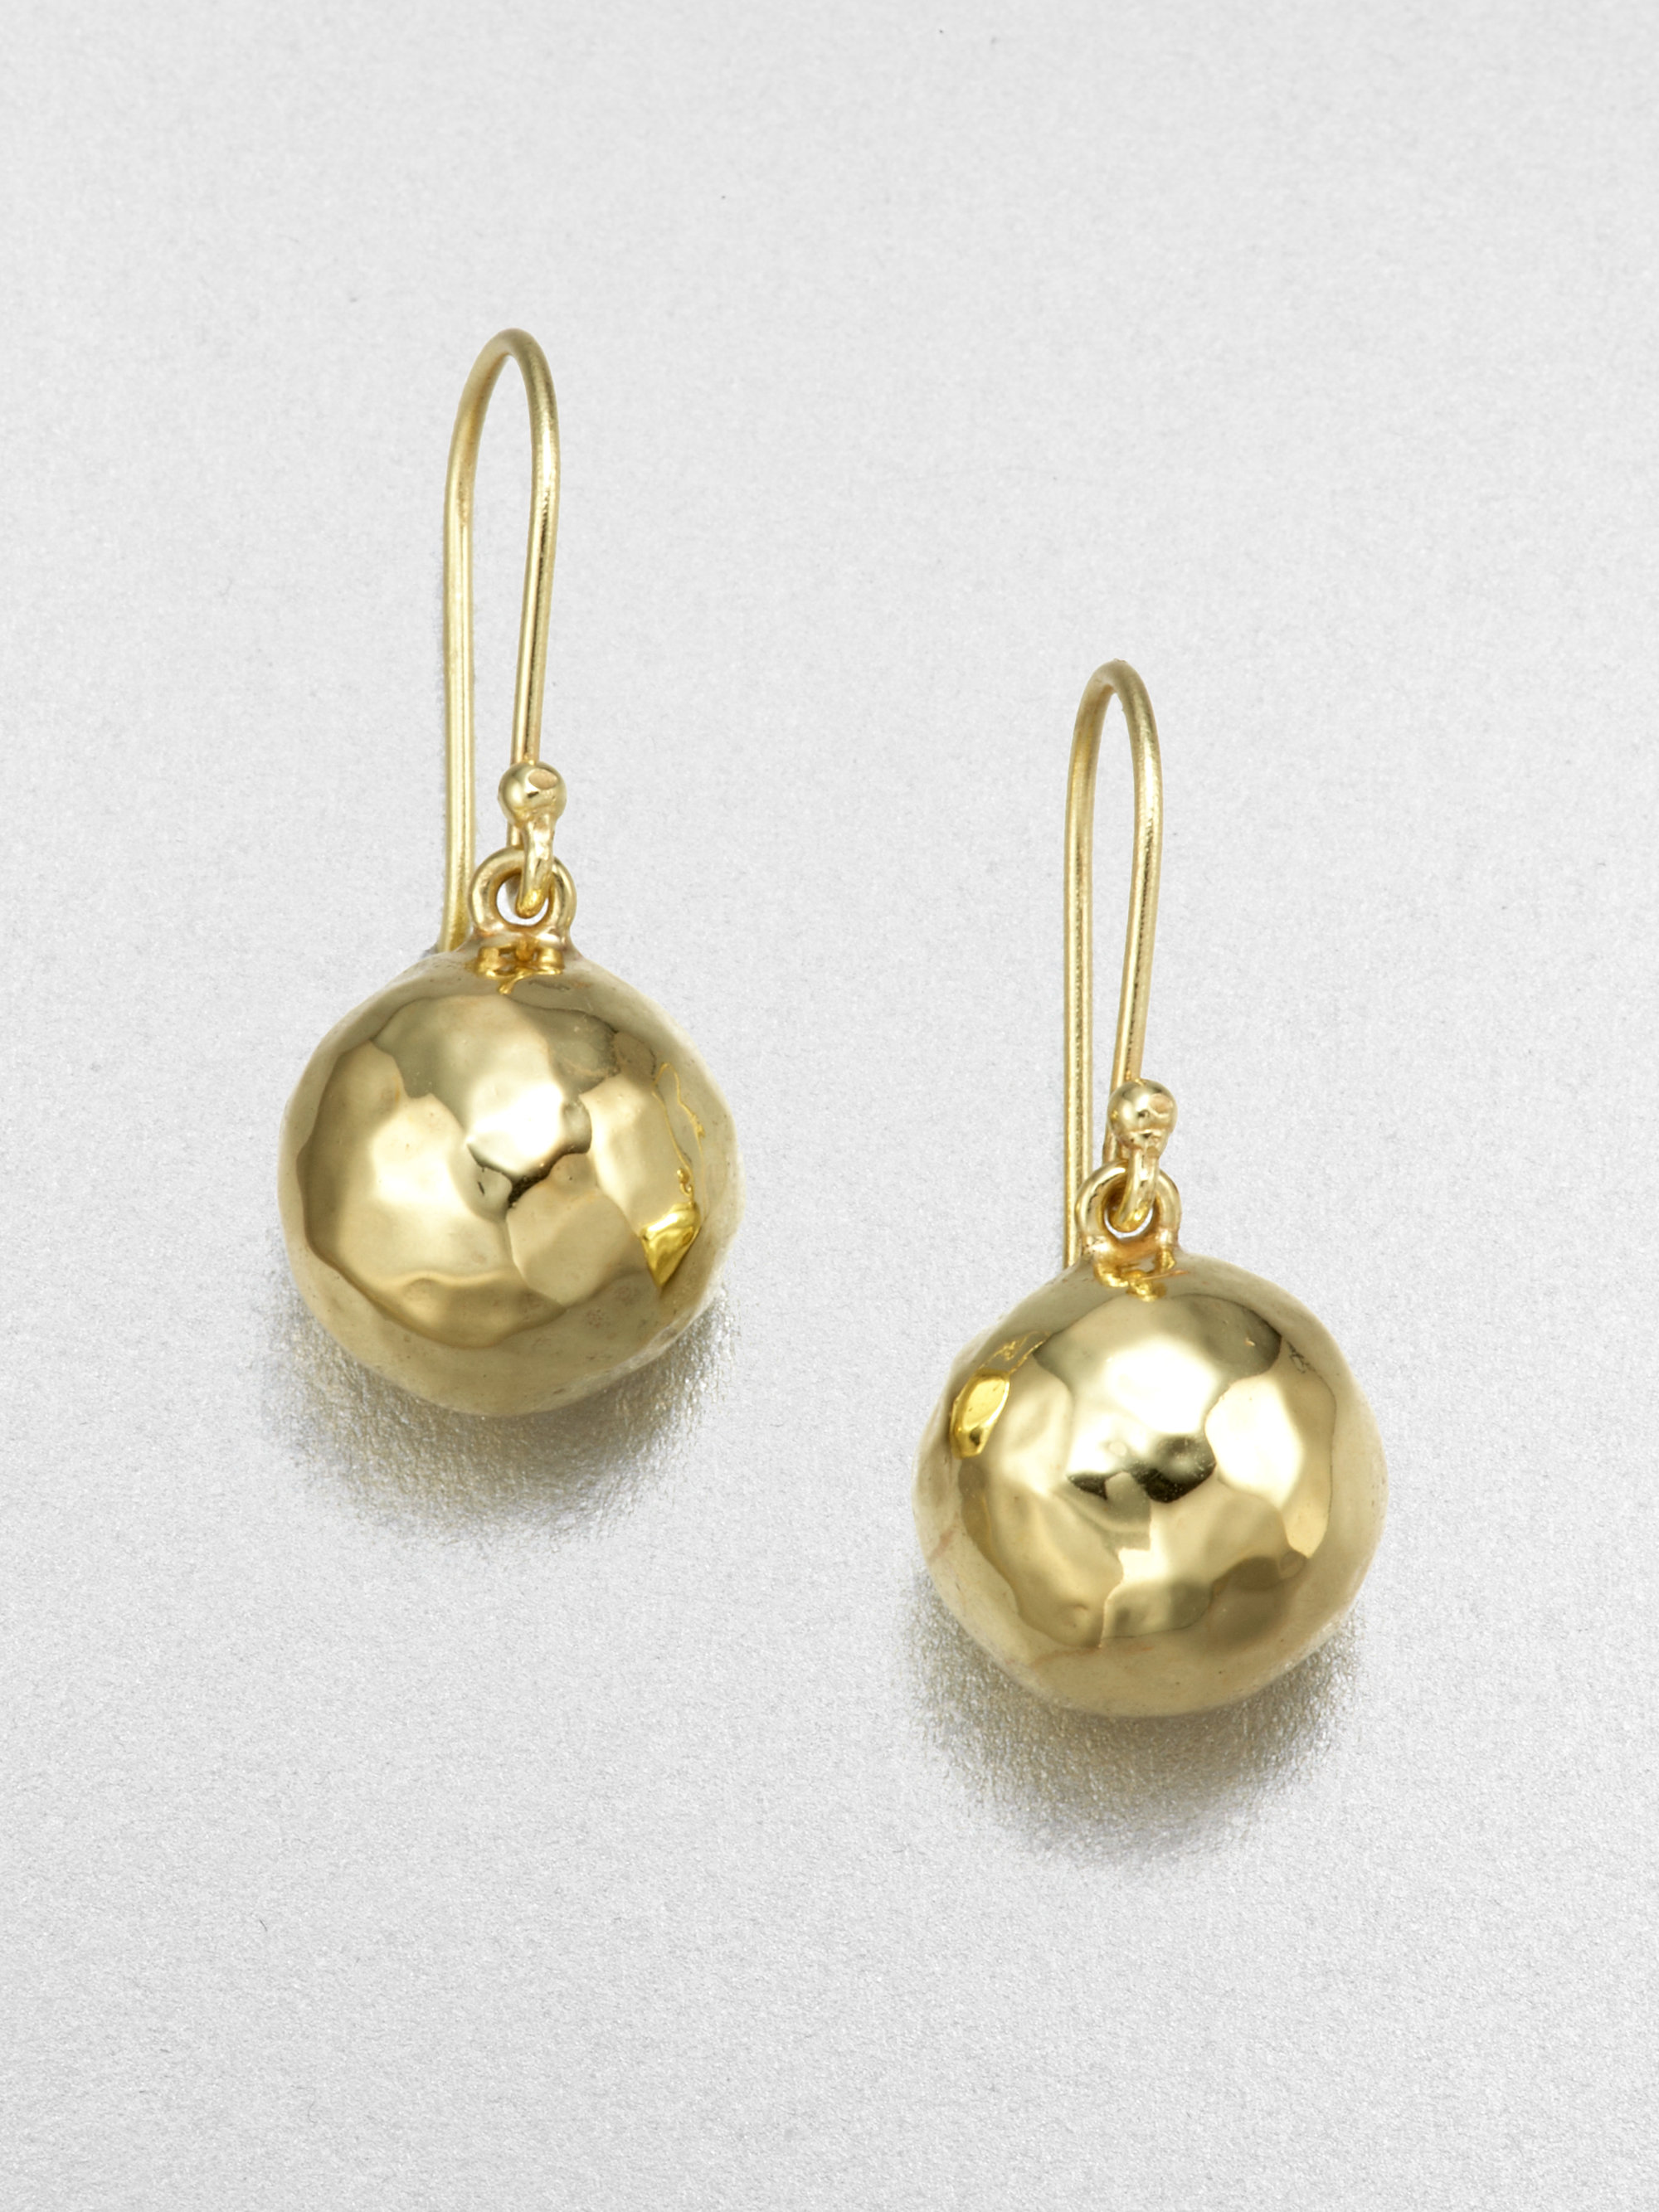 Large Gold Ball Drop Earrings Best All Earring Photos Kamiliol